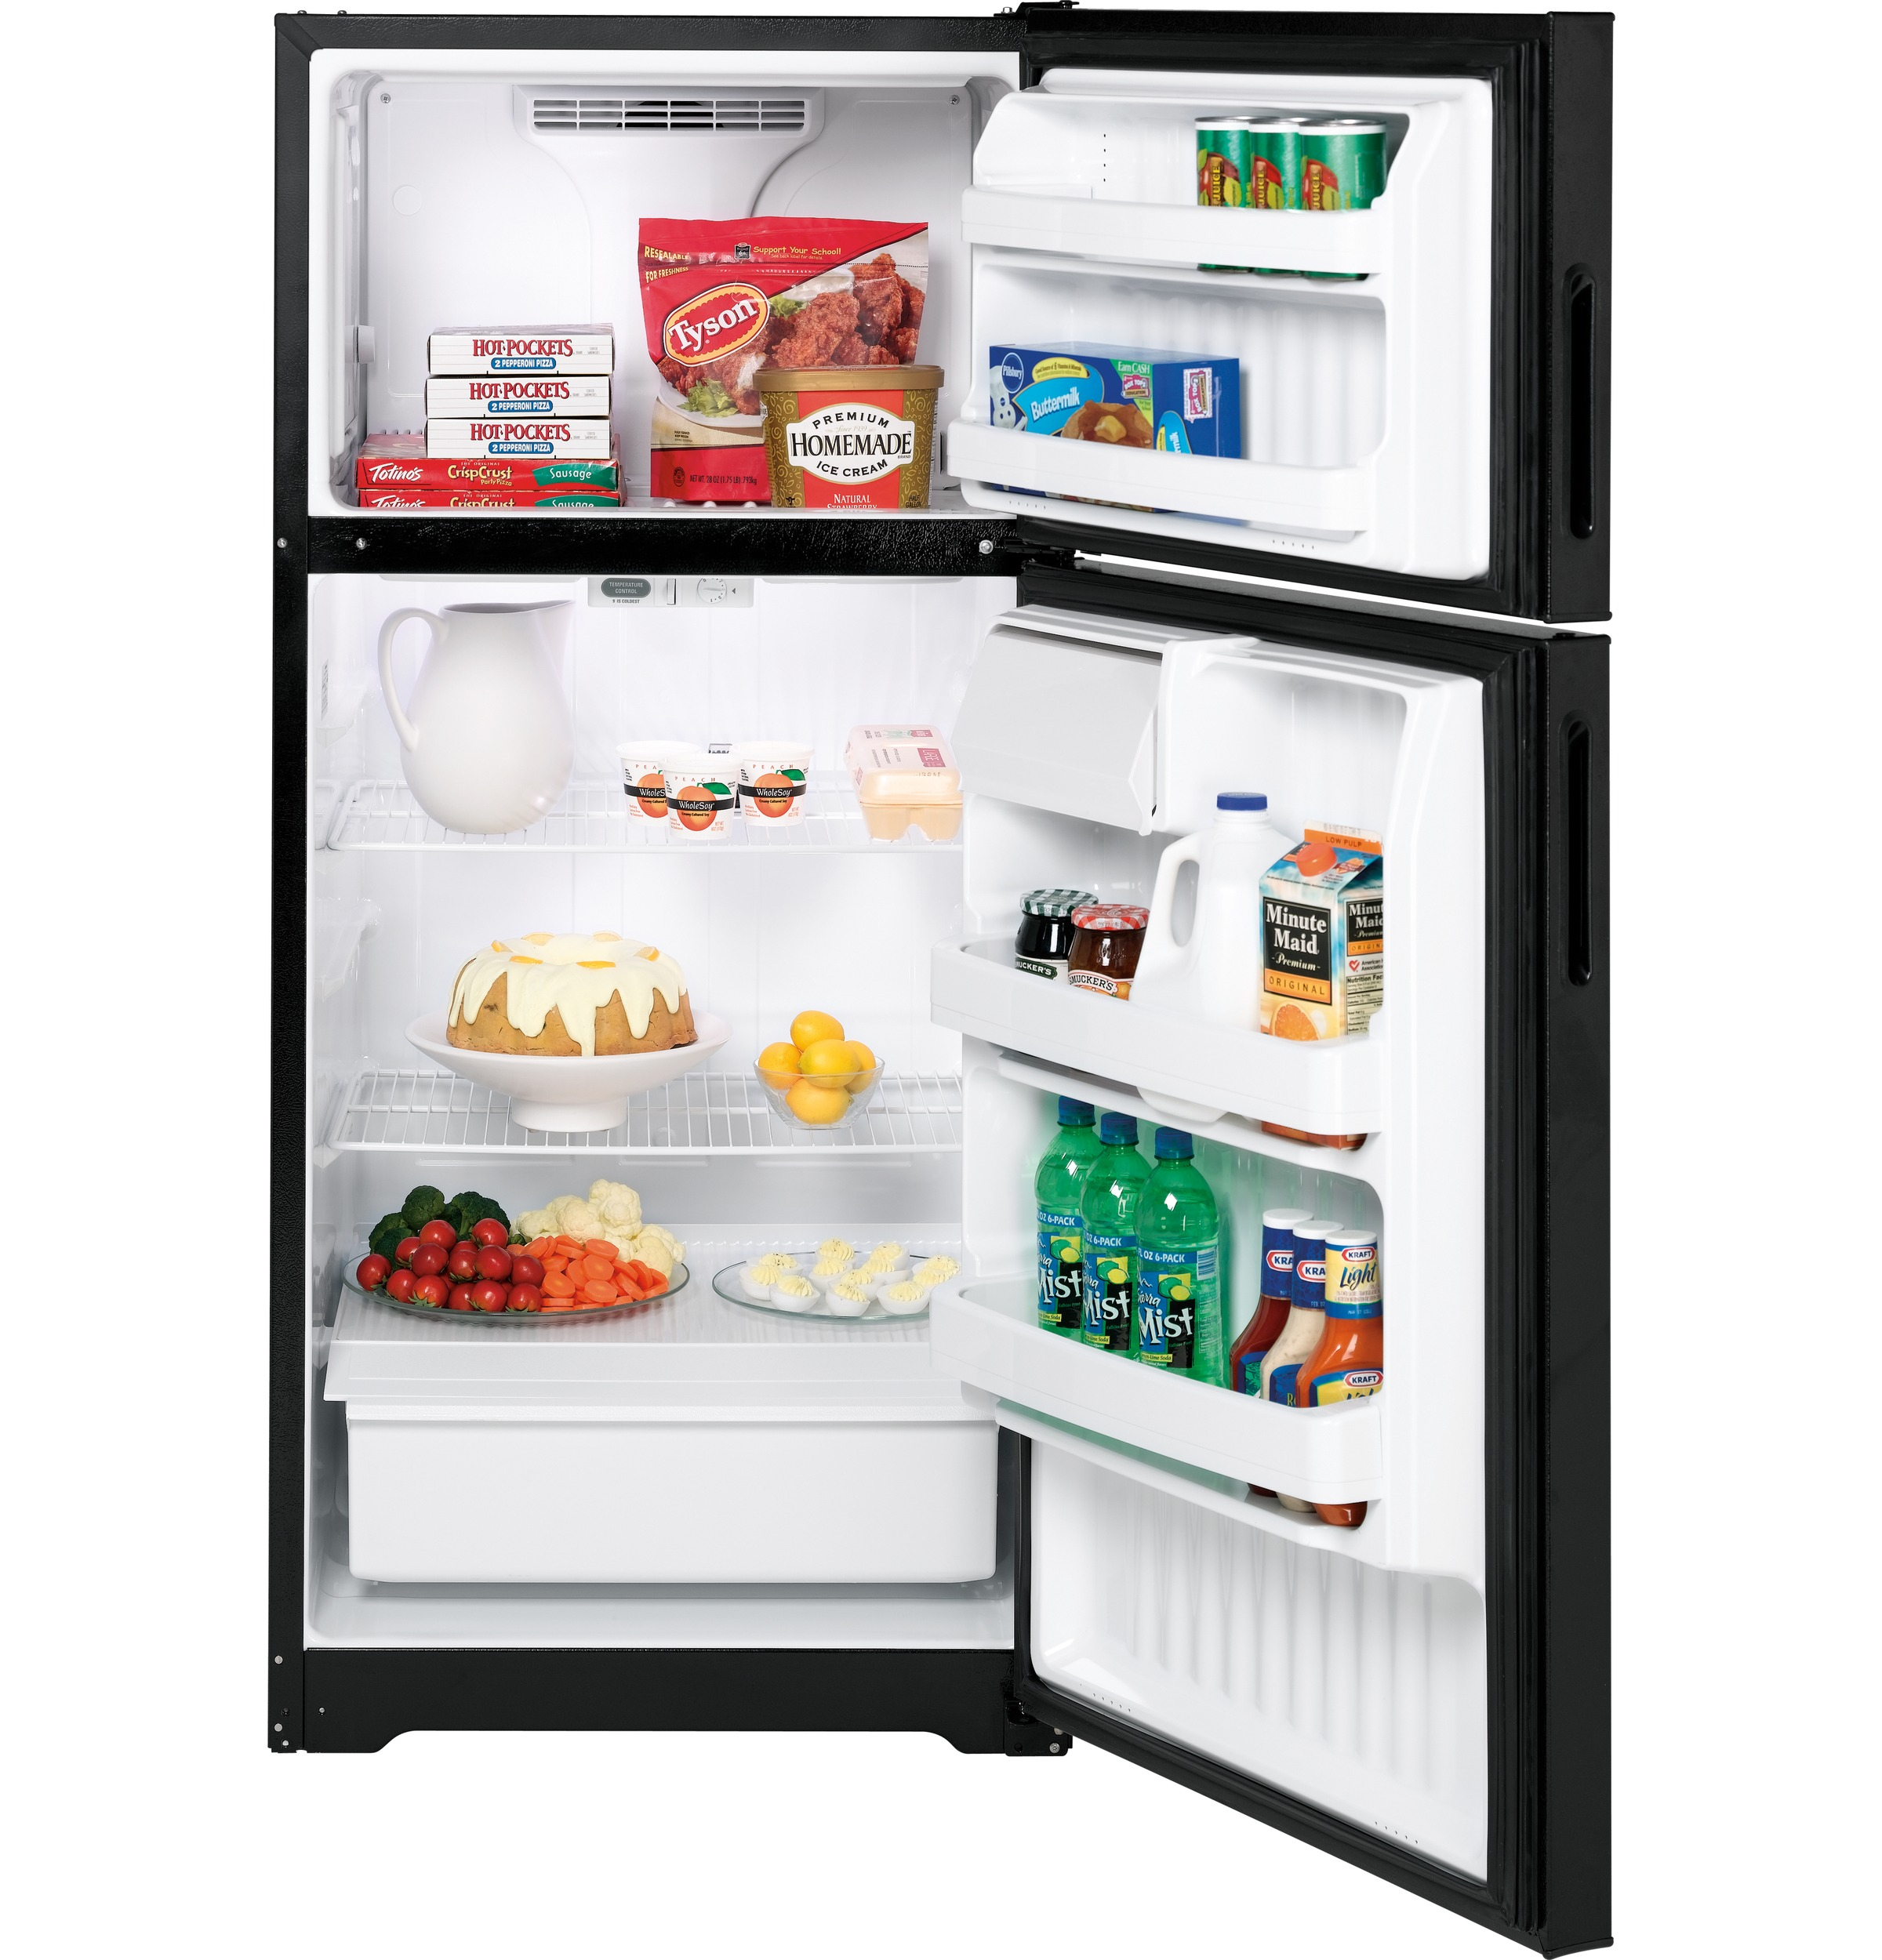 Unique Home Depot Haier Refrigerators Insured By Ross